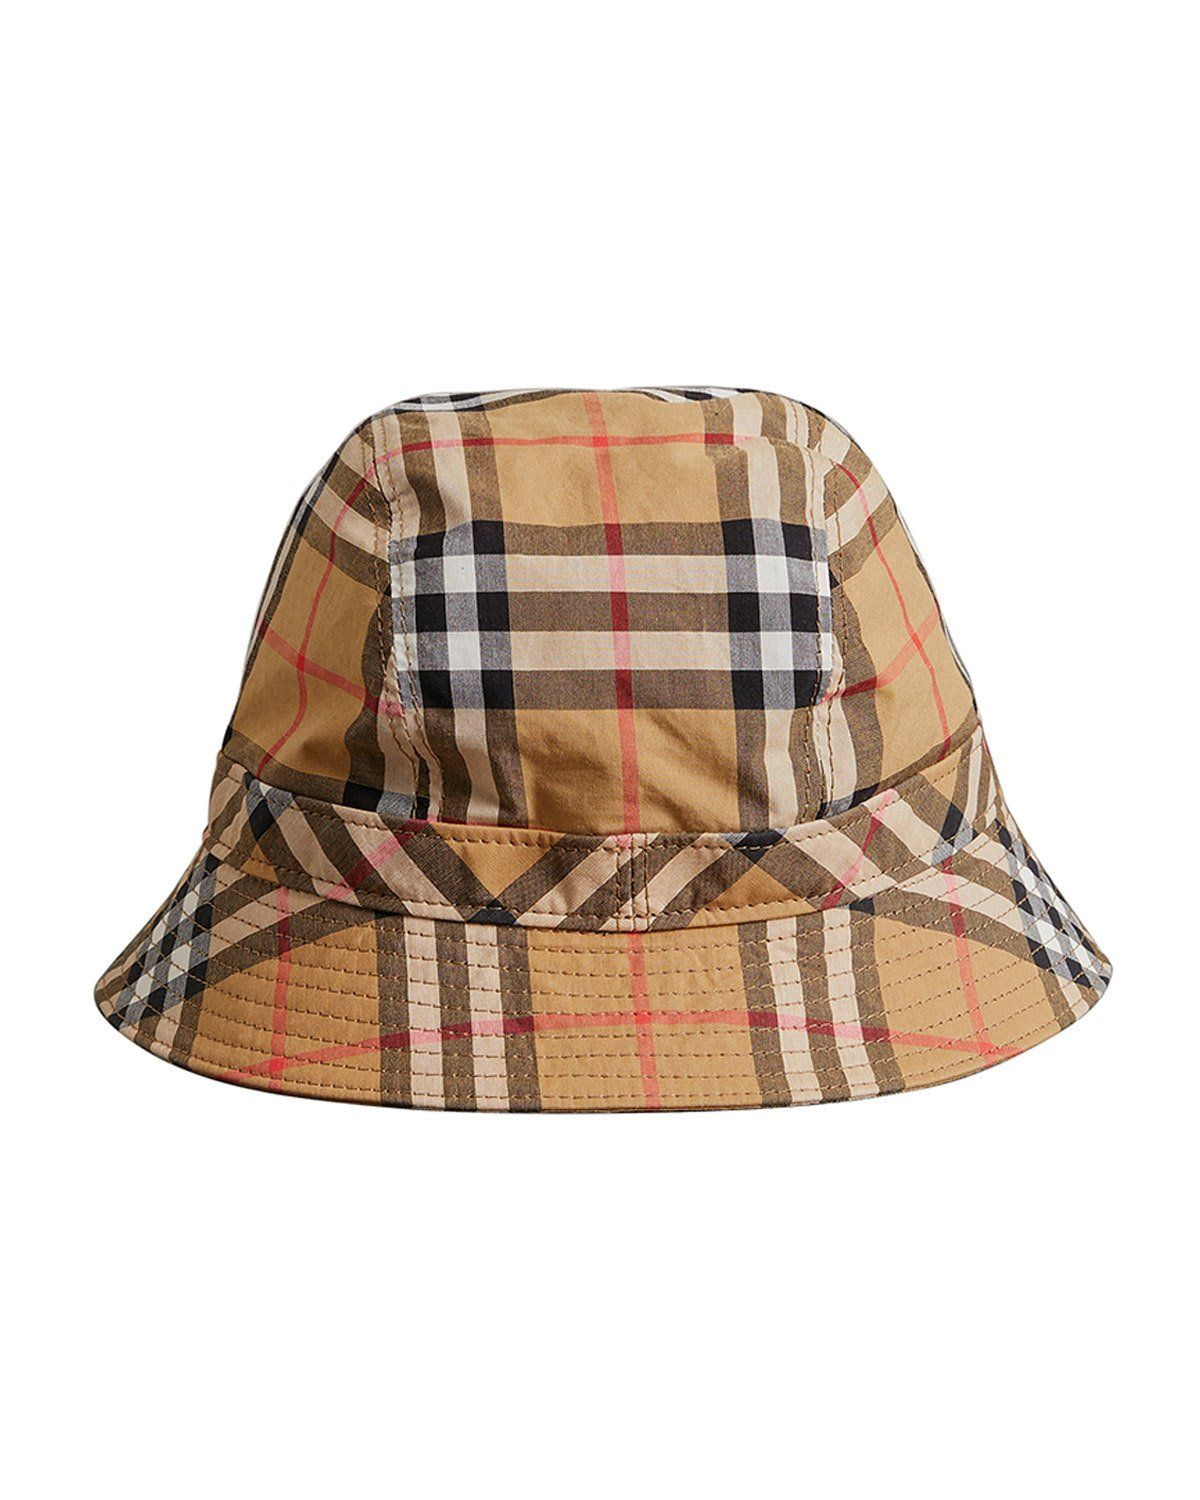 018a3036c BURBERRY MEN'S VINTAGE CHECK BUCKET HAT. #burberry | Burberry in ...